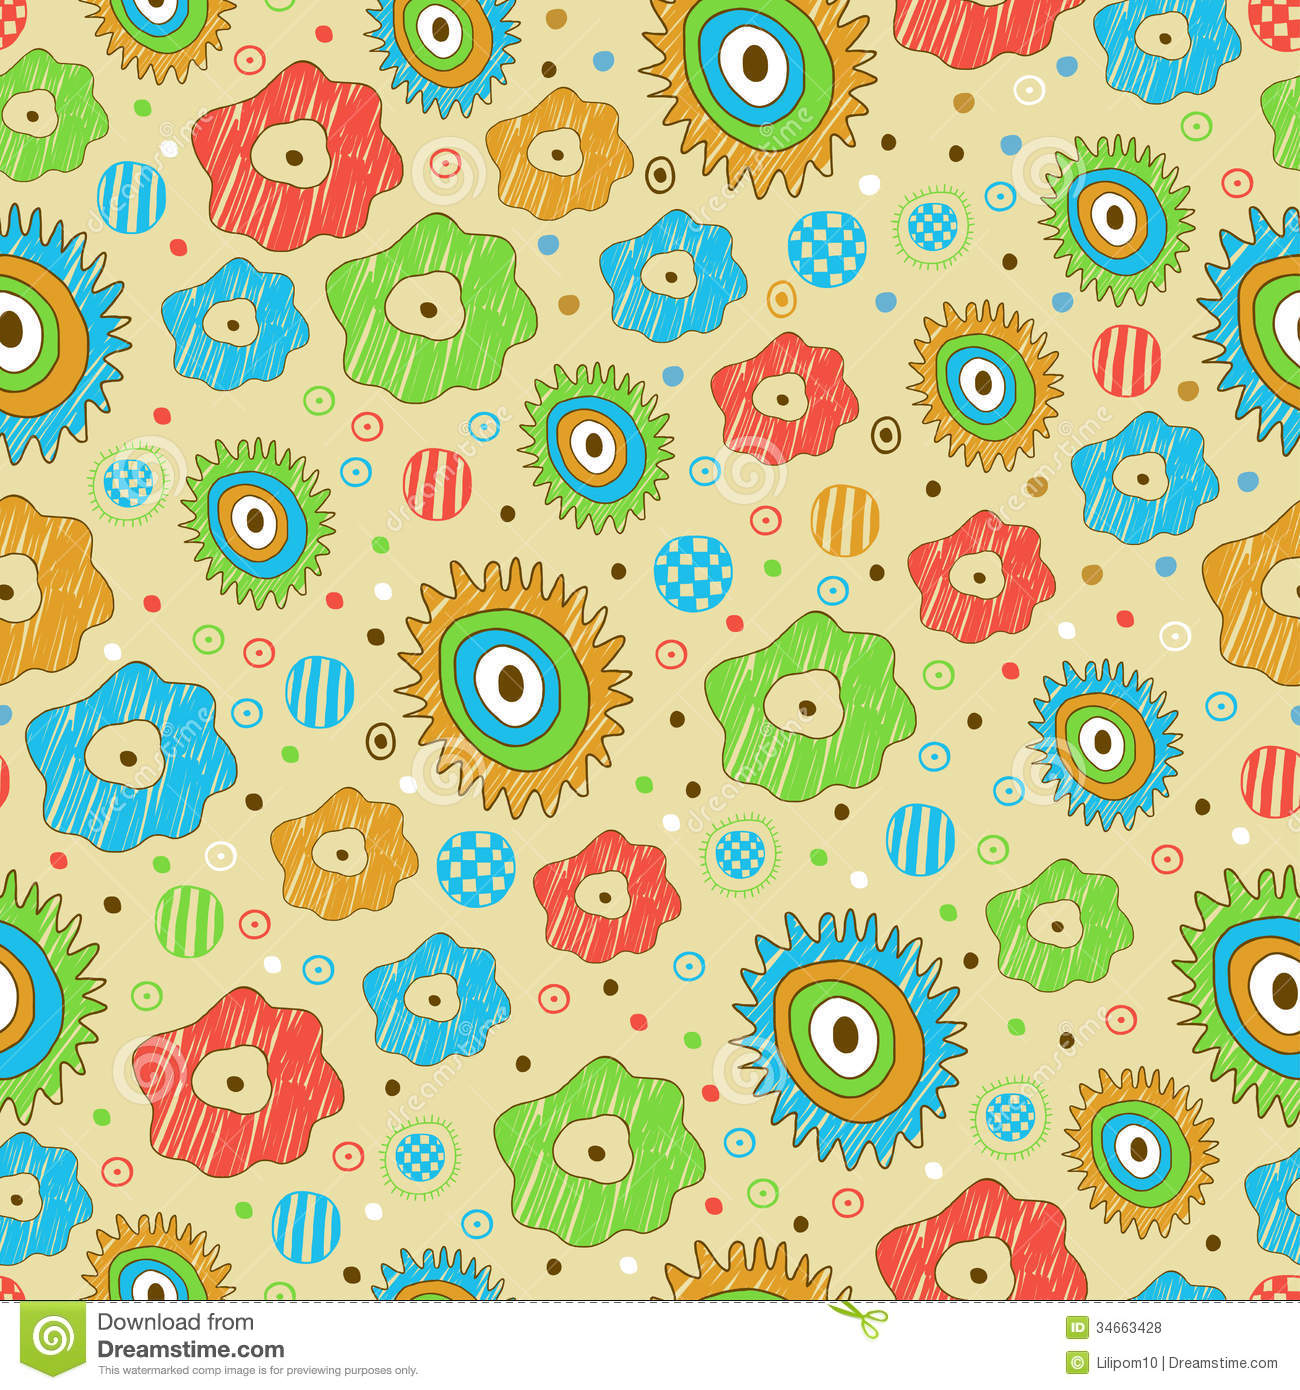 Bright Seamless Floral Pattern Stock Vector - Image: 34663428